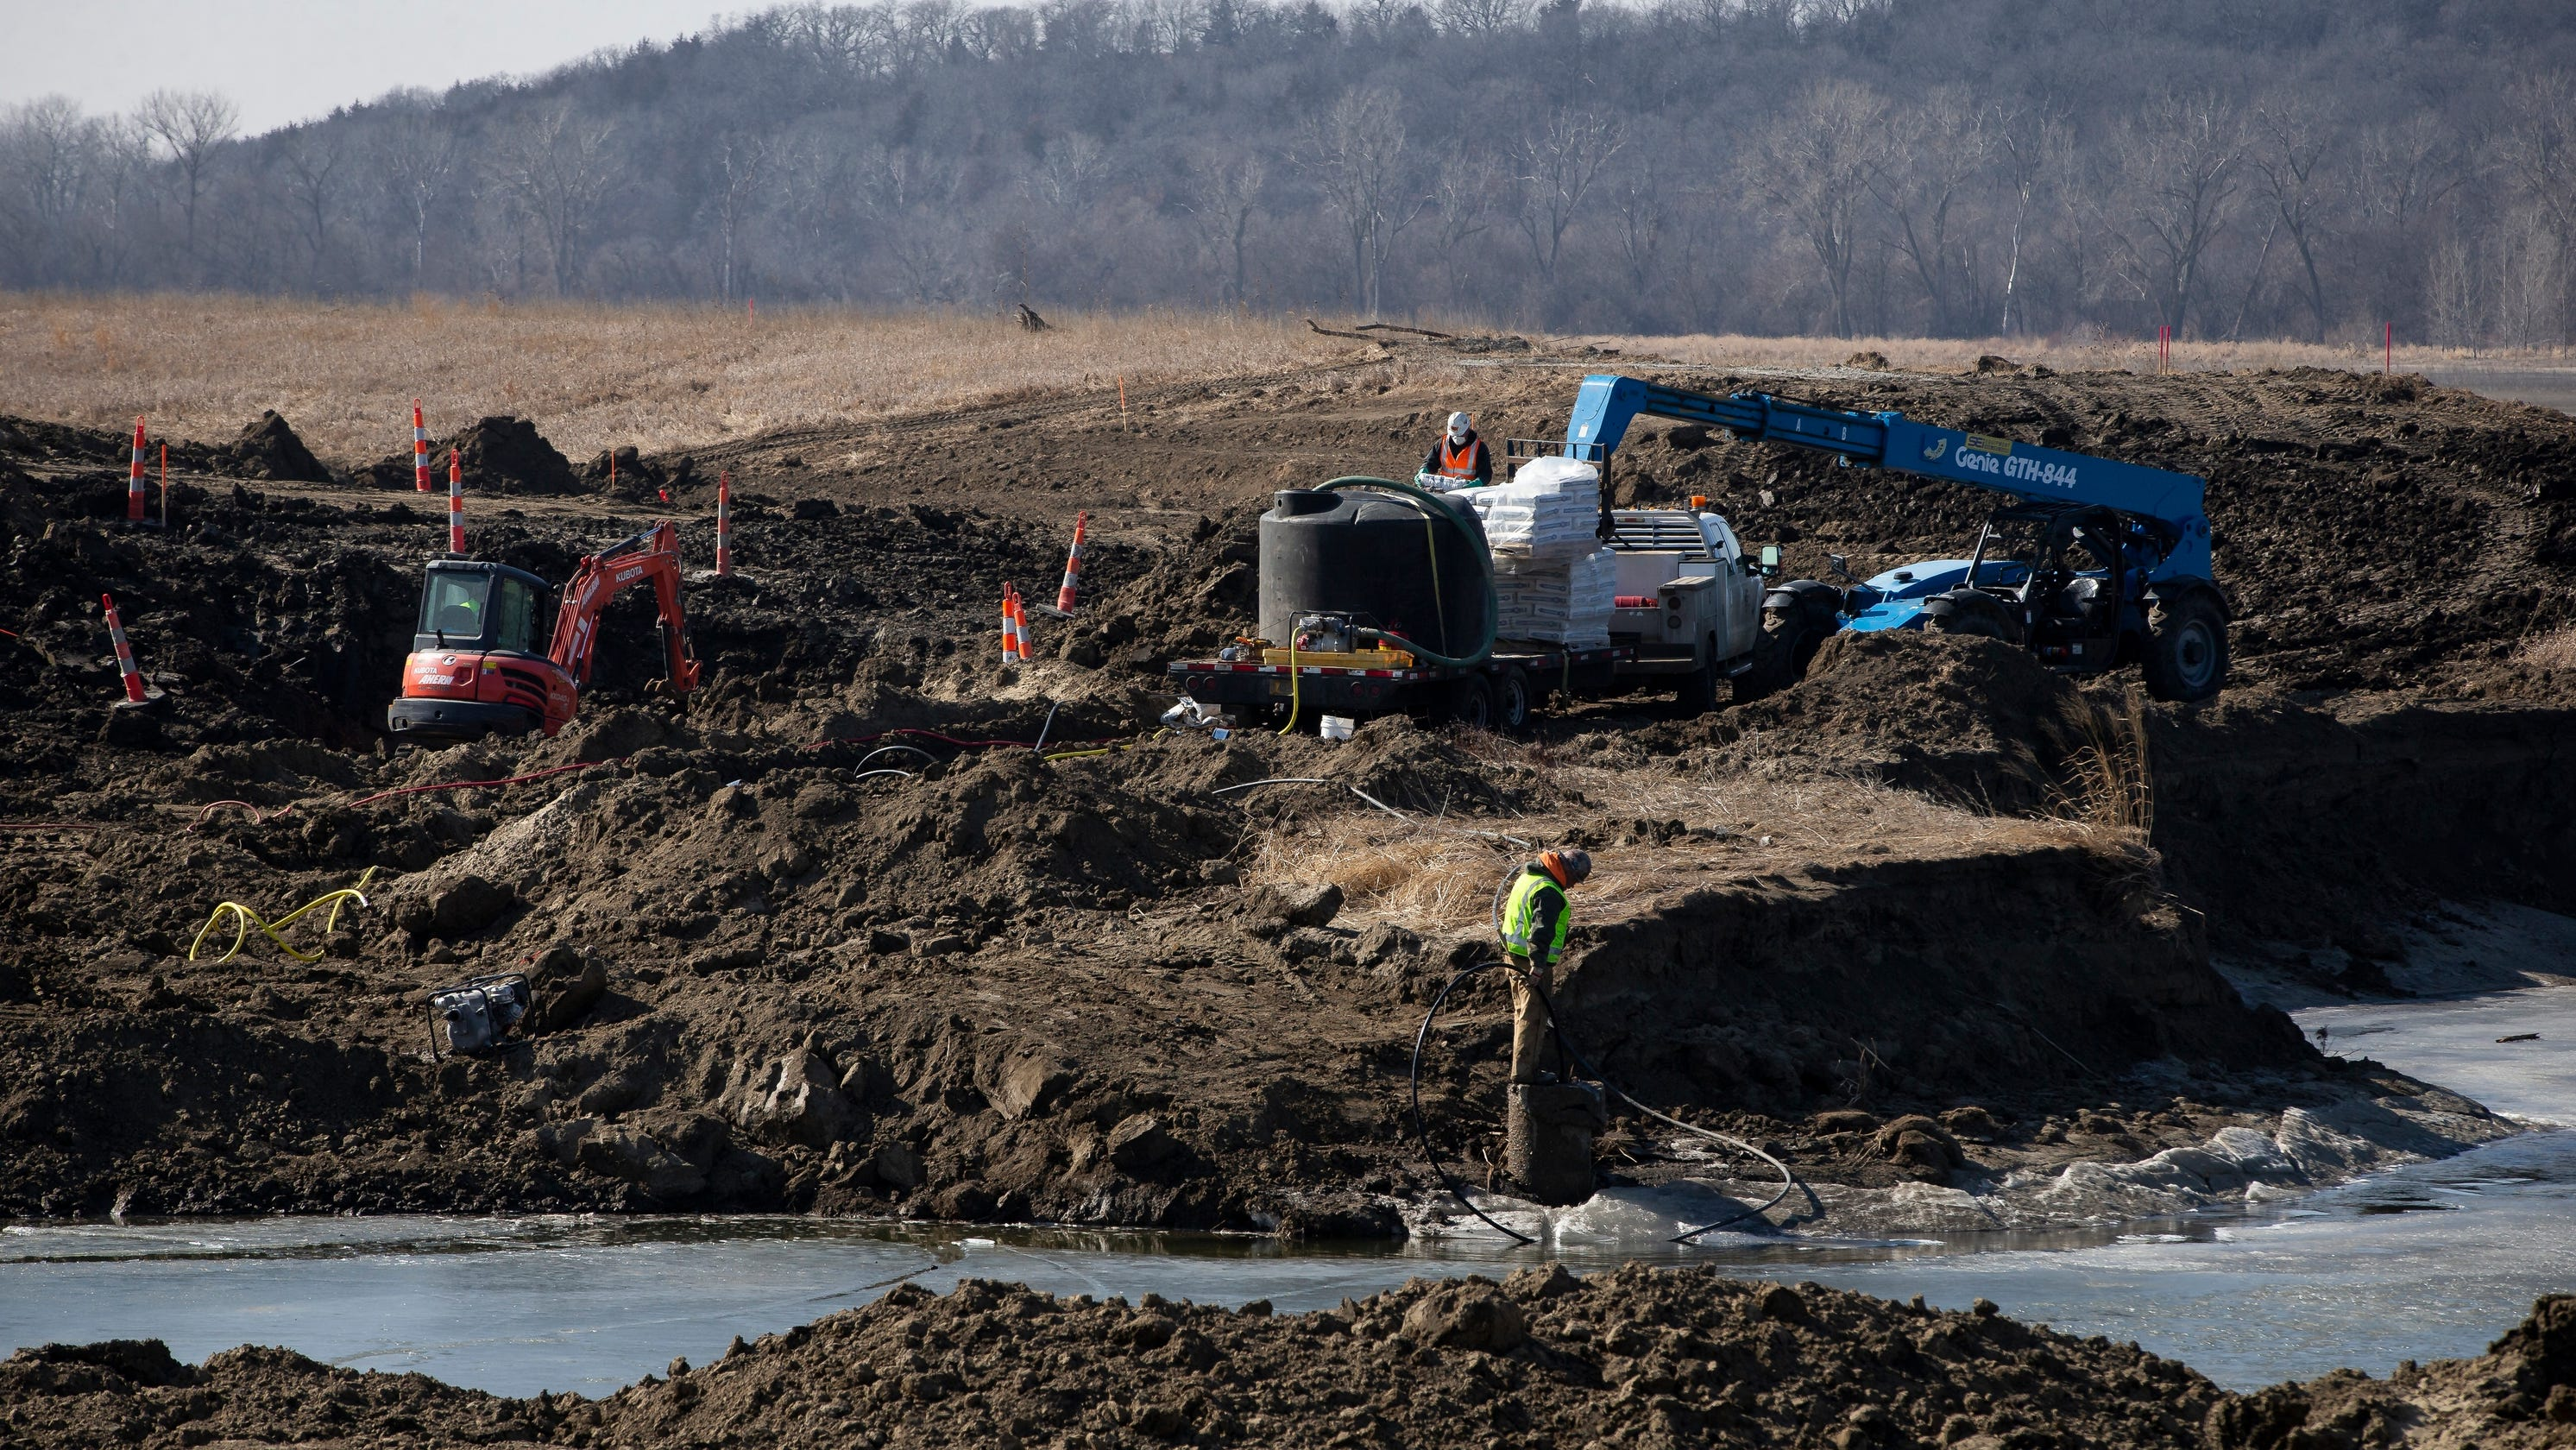 Iowa flood victims need money for levees, buyouts. But state funding so far is a trickle: It's $63.3 million short.